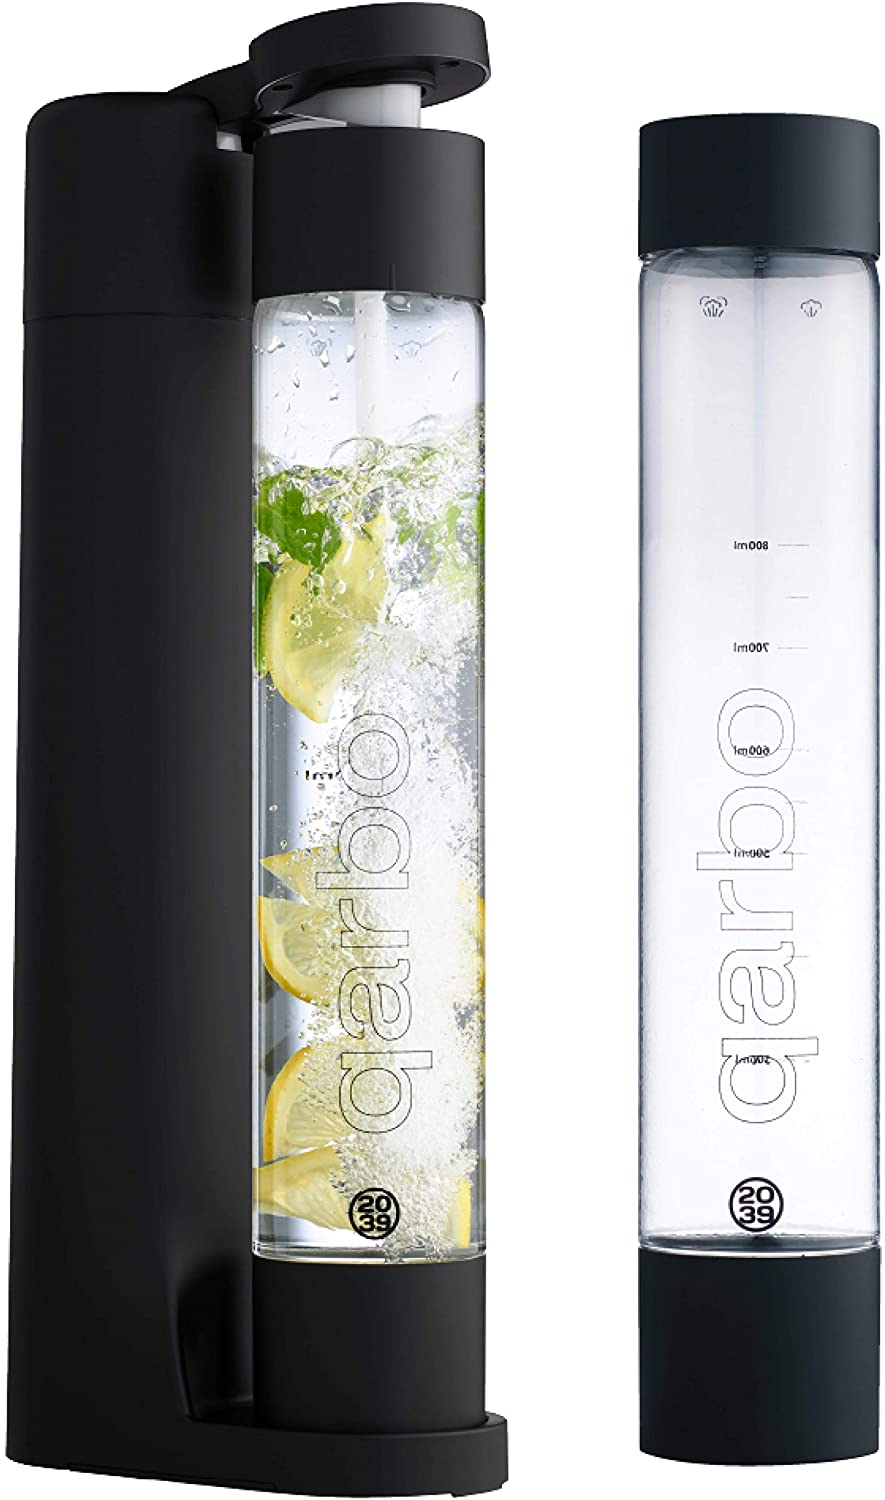 twenty39 qarbo Sparkling Water Maker and Fruit Infuser - Premium Carbonation Machine with Two 1L BPA Free Bottles - Infuses Flavor while Carbonating Beverages, Use Standard Gas Cylinder (not included), Matte Black